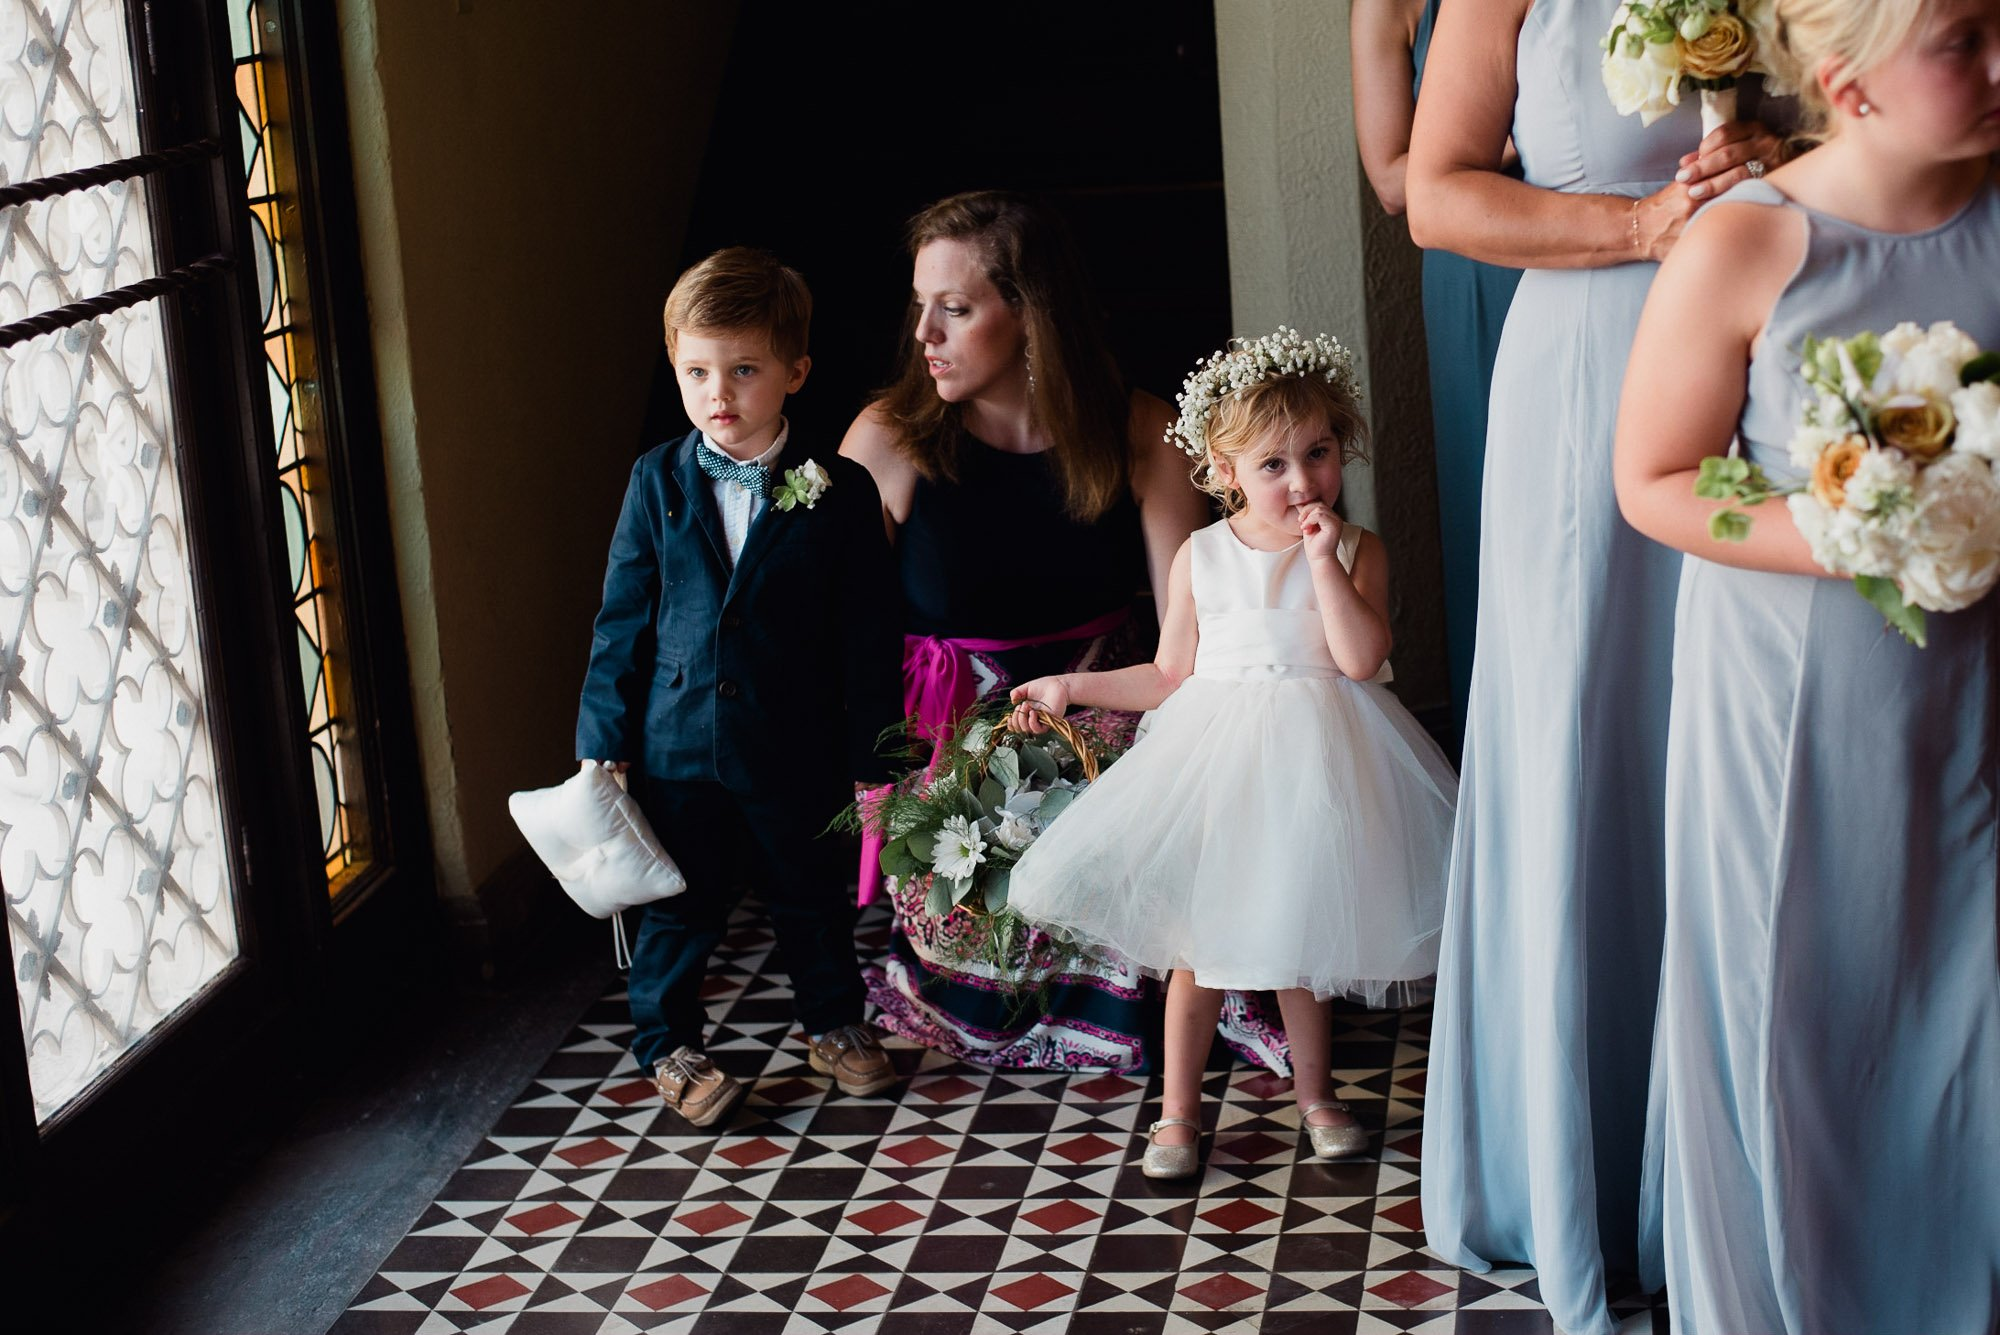 candid, documentary wedding photographer in central austin texas, low key wedding images for creative brides